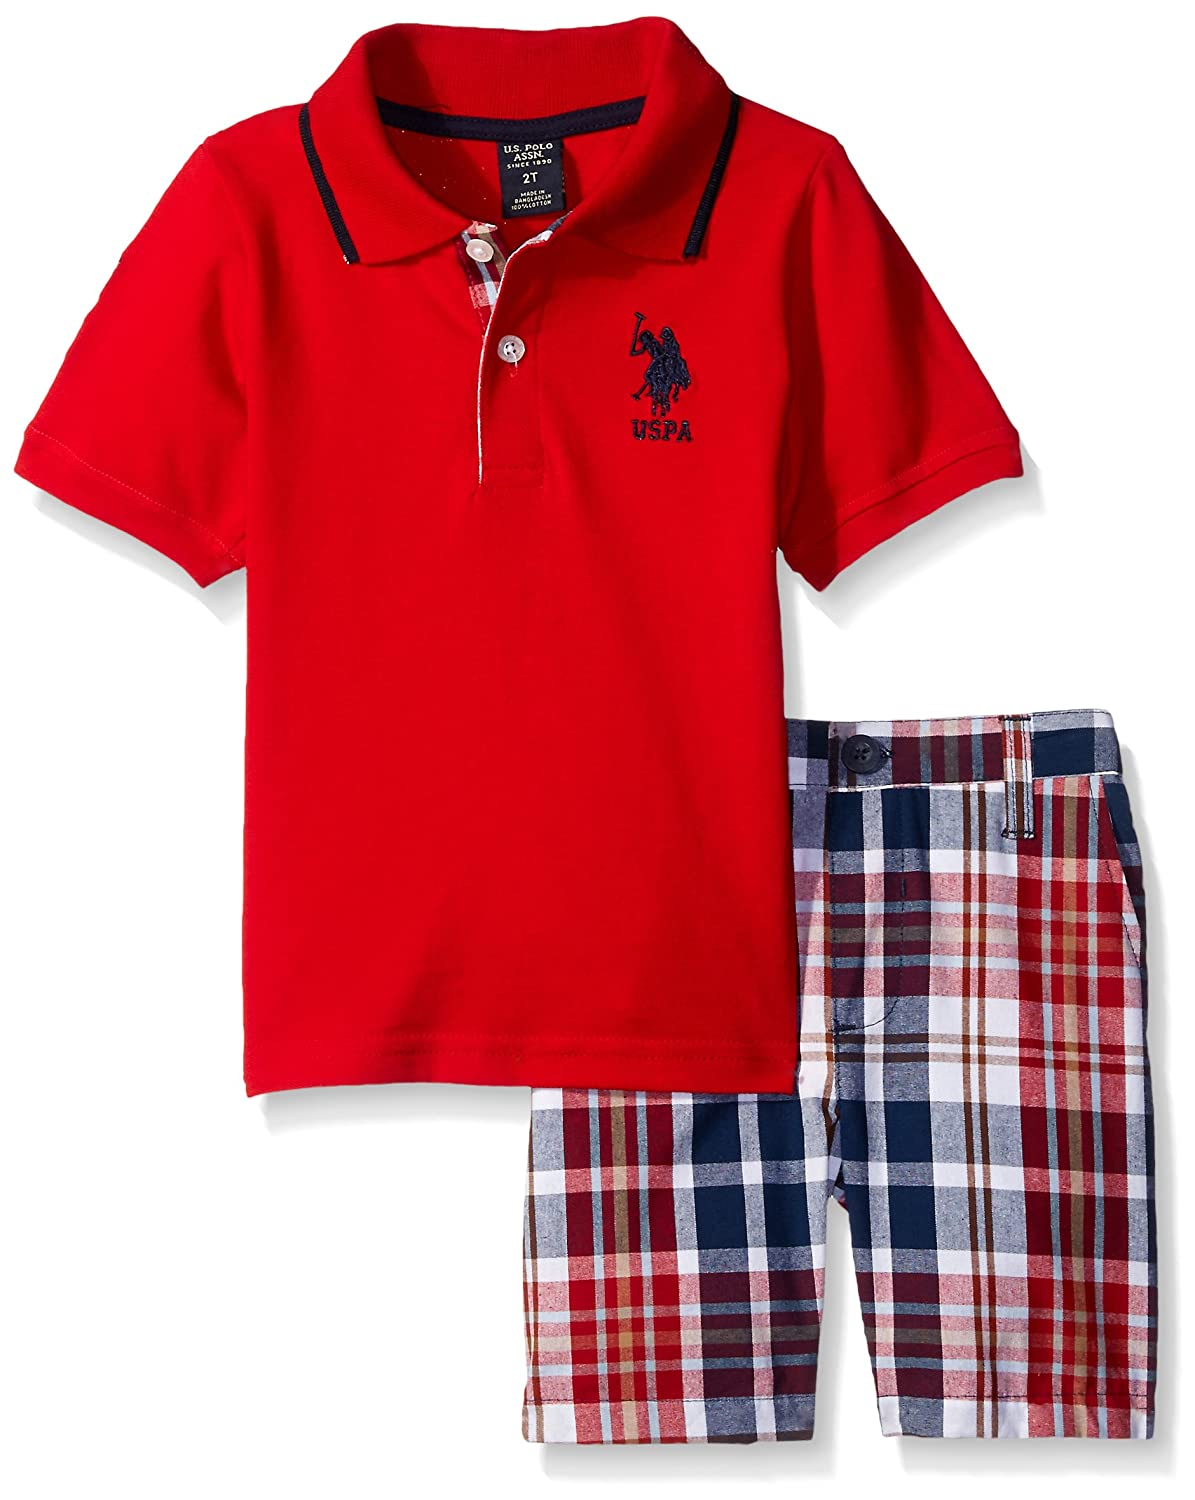 U.S. Polo Assn. Boys' 2 Piece Big Pony Solid Pique Polo Shirt and Plaid Short QX002